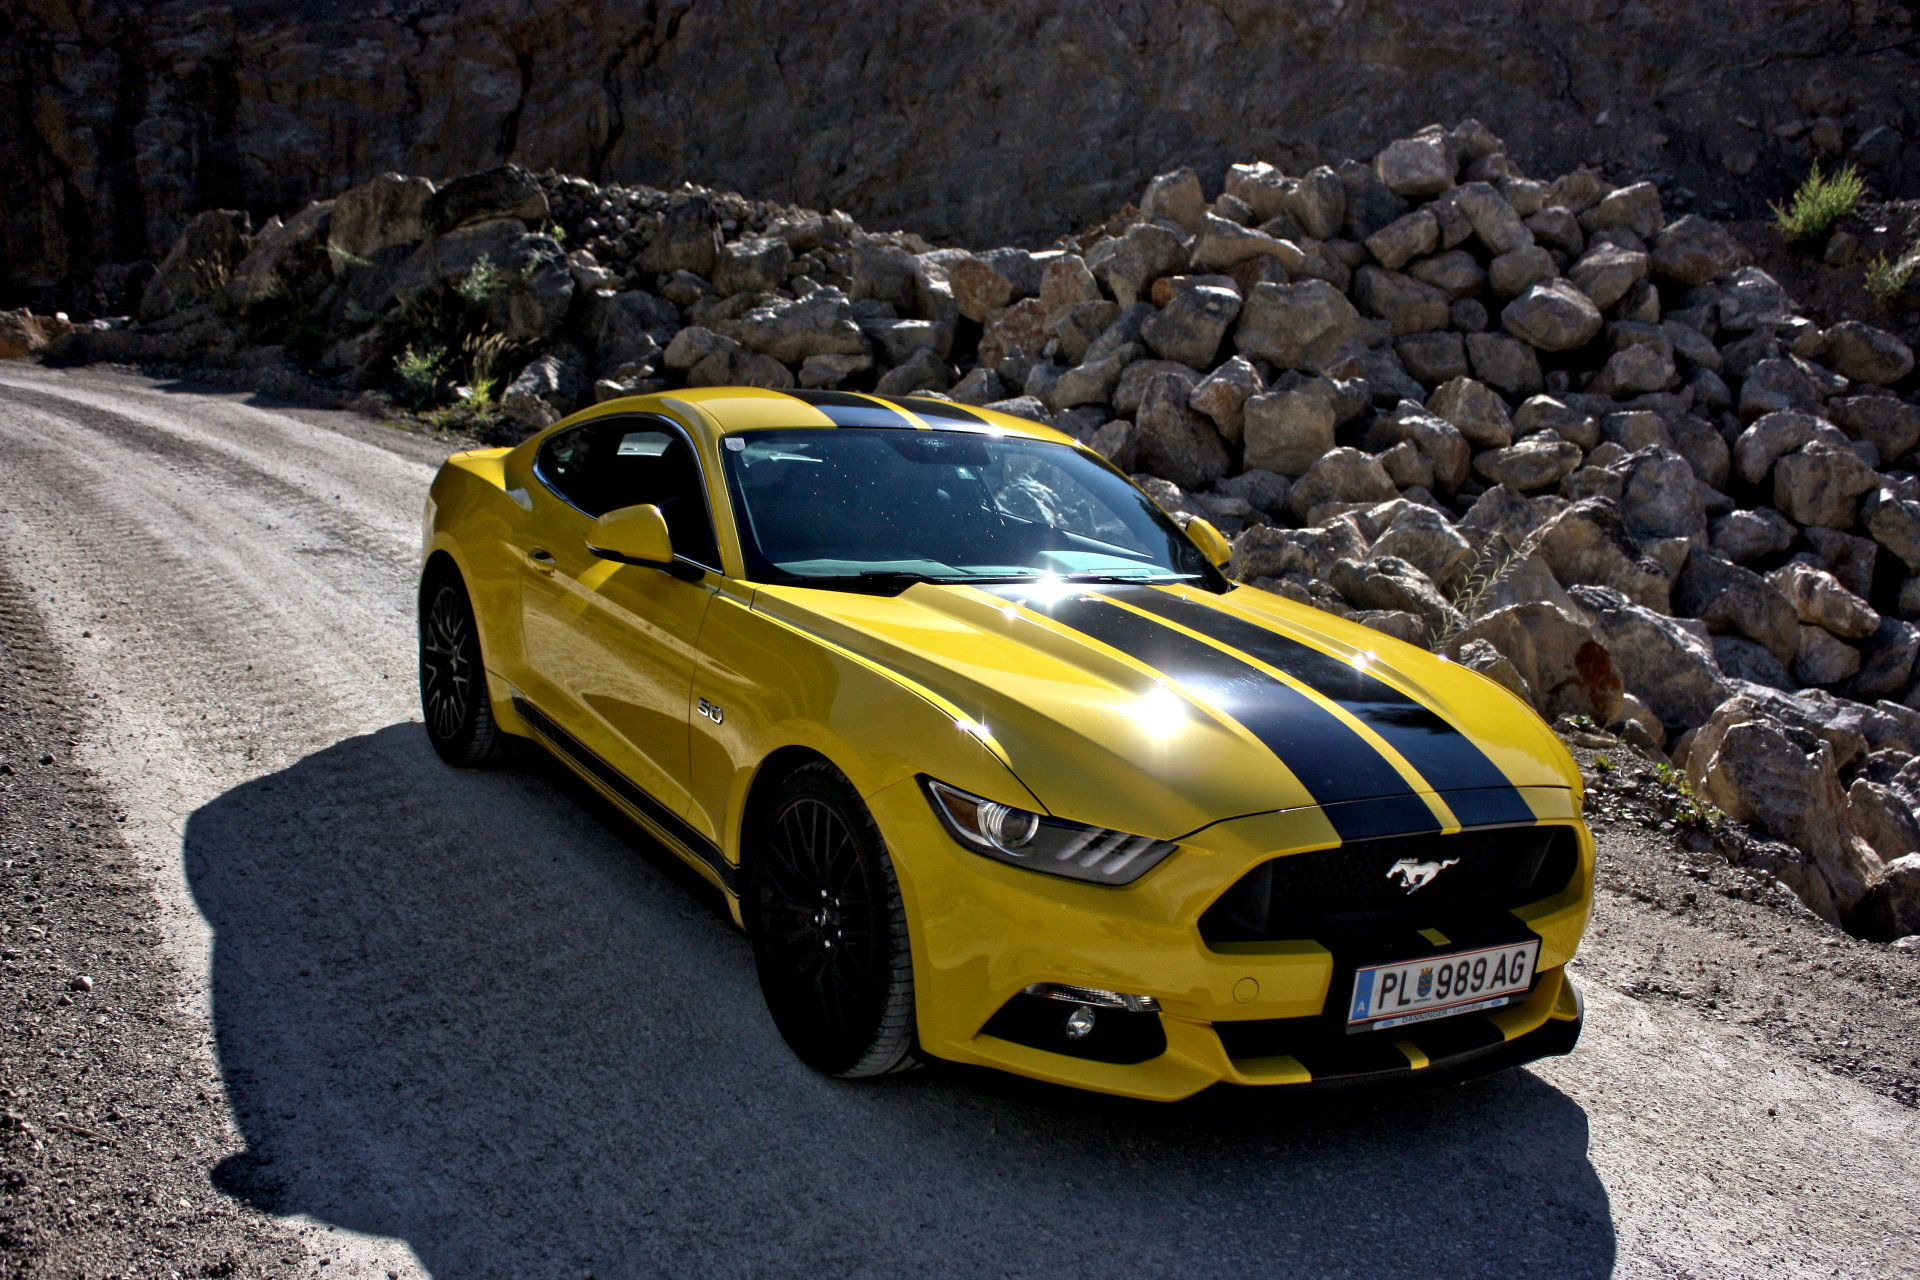 Ford Mustang GT 5.0 HD Wallpaper